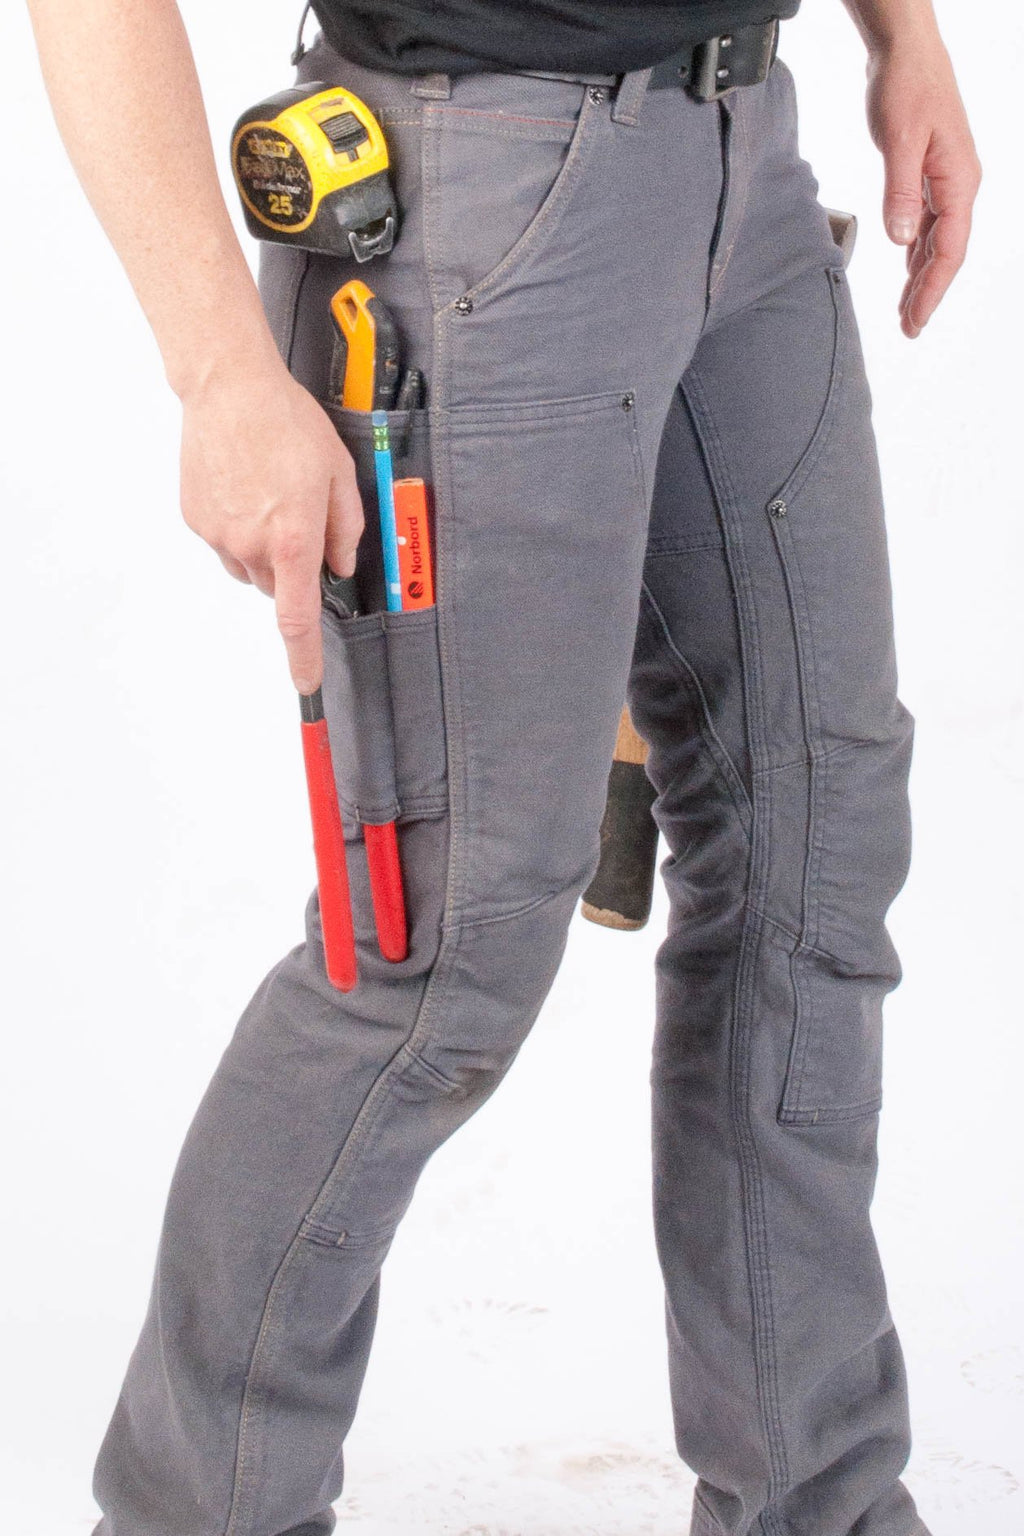 Lower half of Britt Smyton,  the namesake of the Britt Utility pant she is wearing. The Britt Utility Workpant for Women in Grey Stretch Canvas has a measuring tape, penci, plyers, hammer, and multiple tools in her side pockets on the right. On the left, the handle of a has a hammer can be seen popping out from The Britt Utility's modified hammer loop.